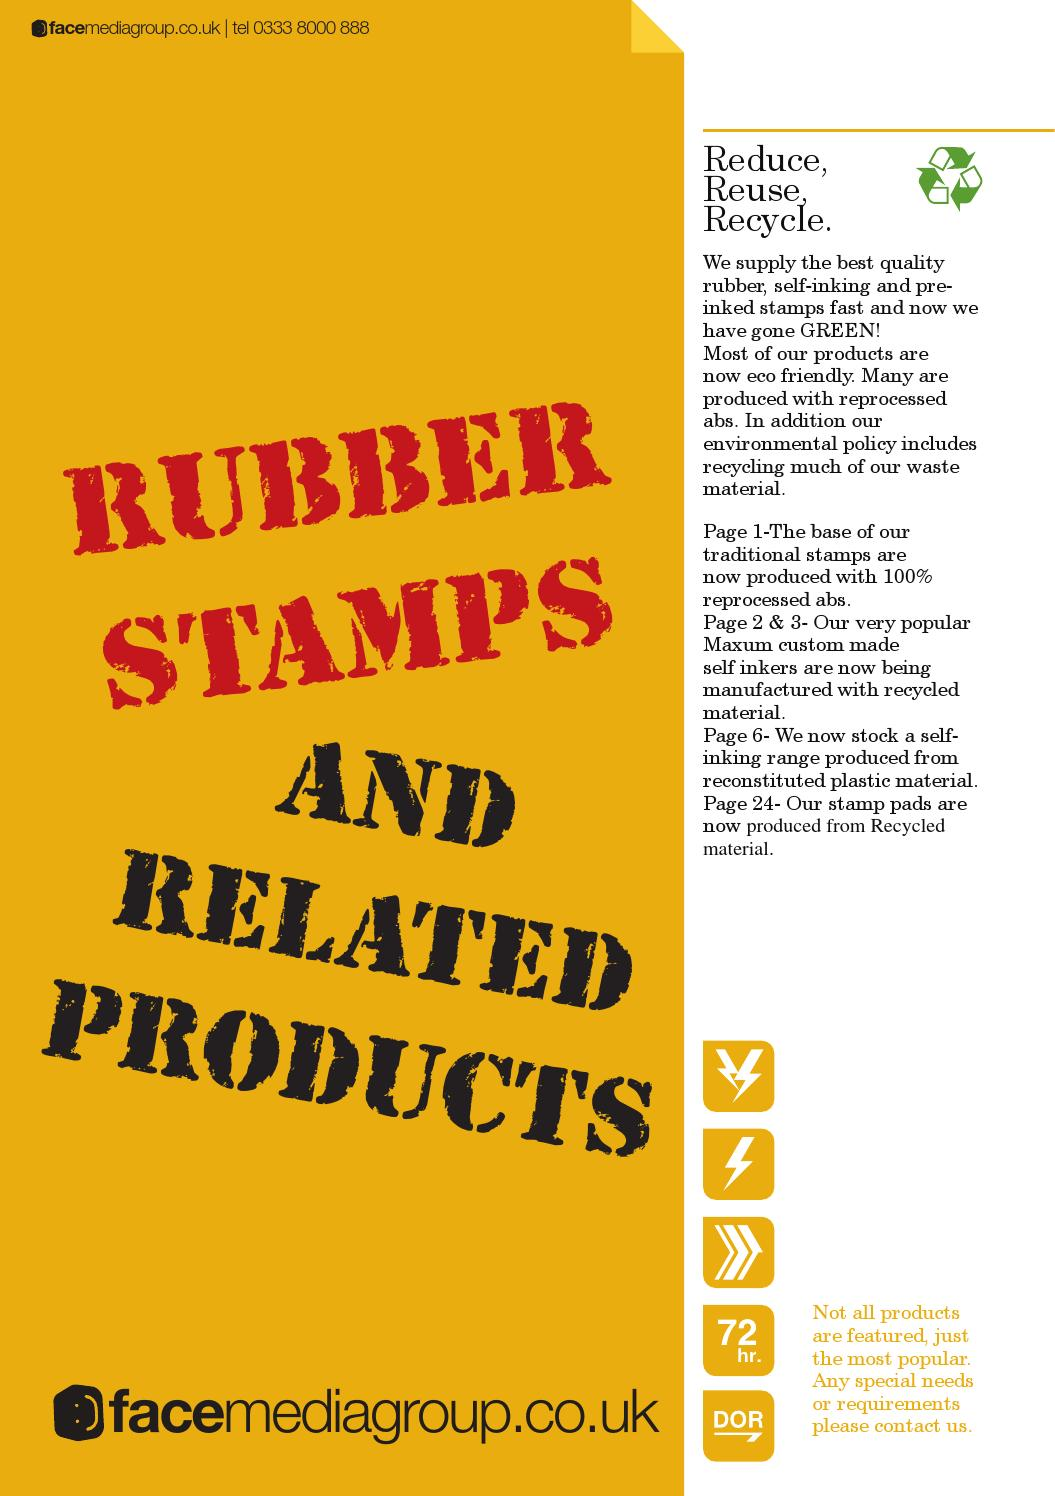 Rubberstamps 2015 From Face Media Group By Facemediagroup